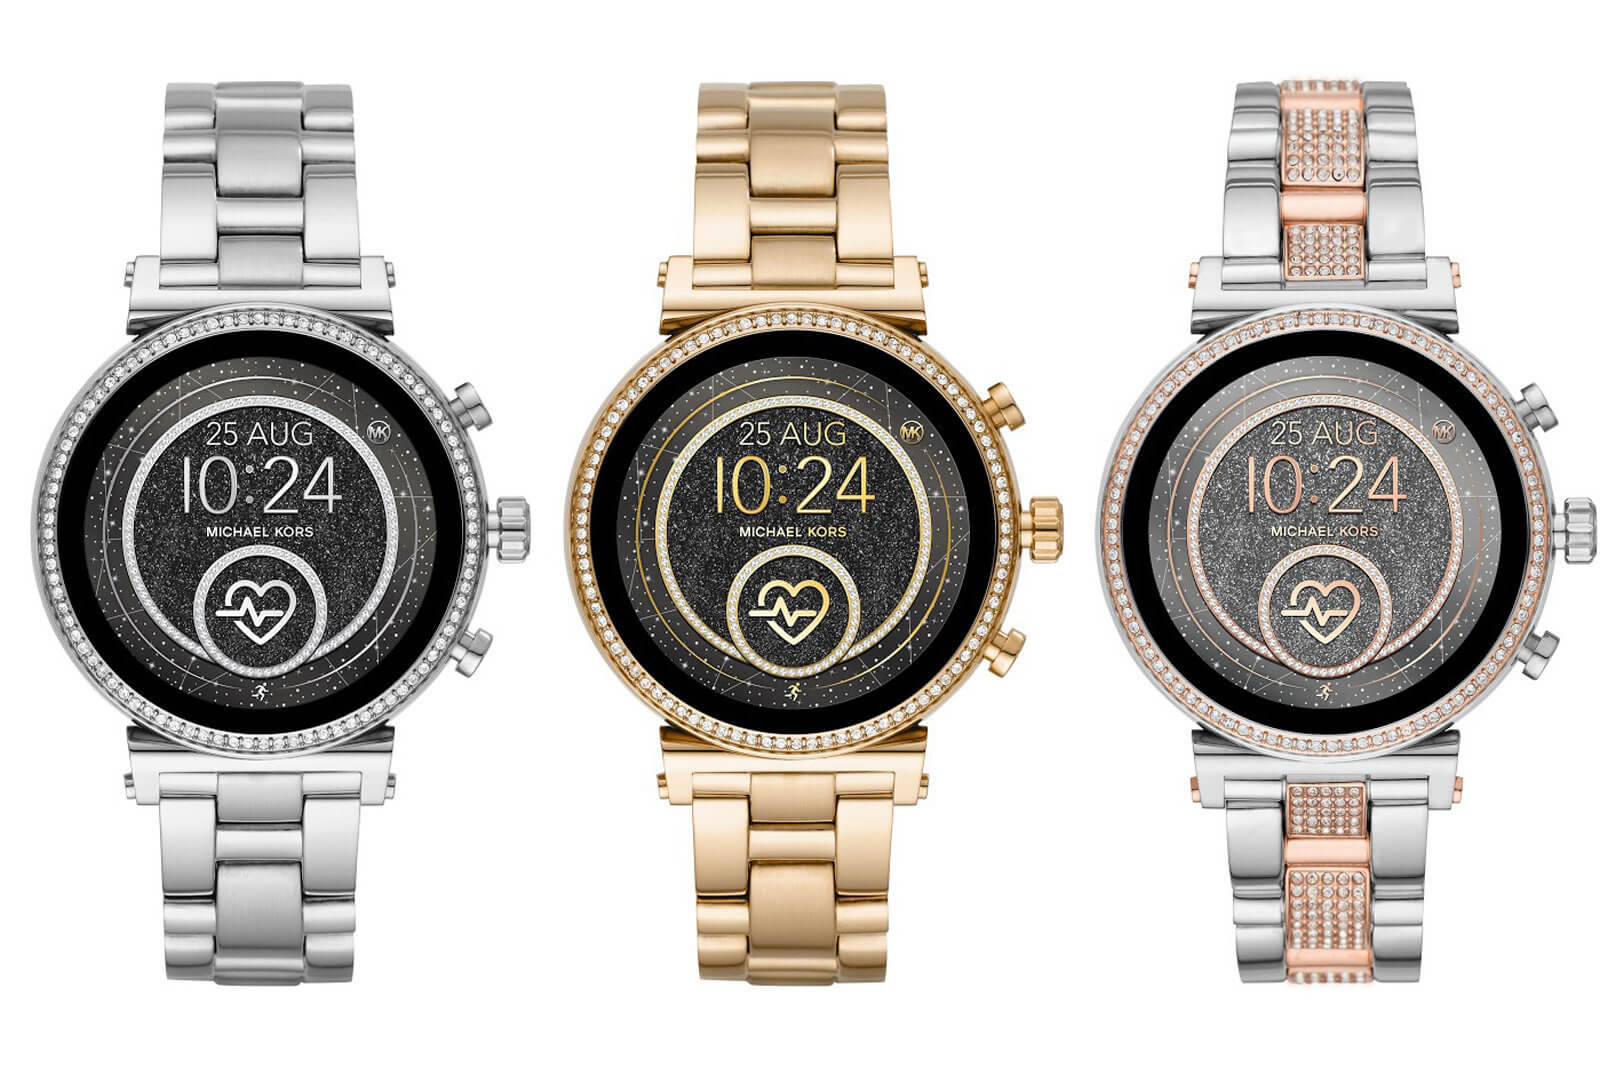 Michael Kors Launches New Access Sofie 2.0 With Heart Rate Monitor And Much More